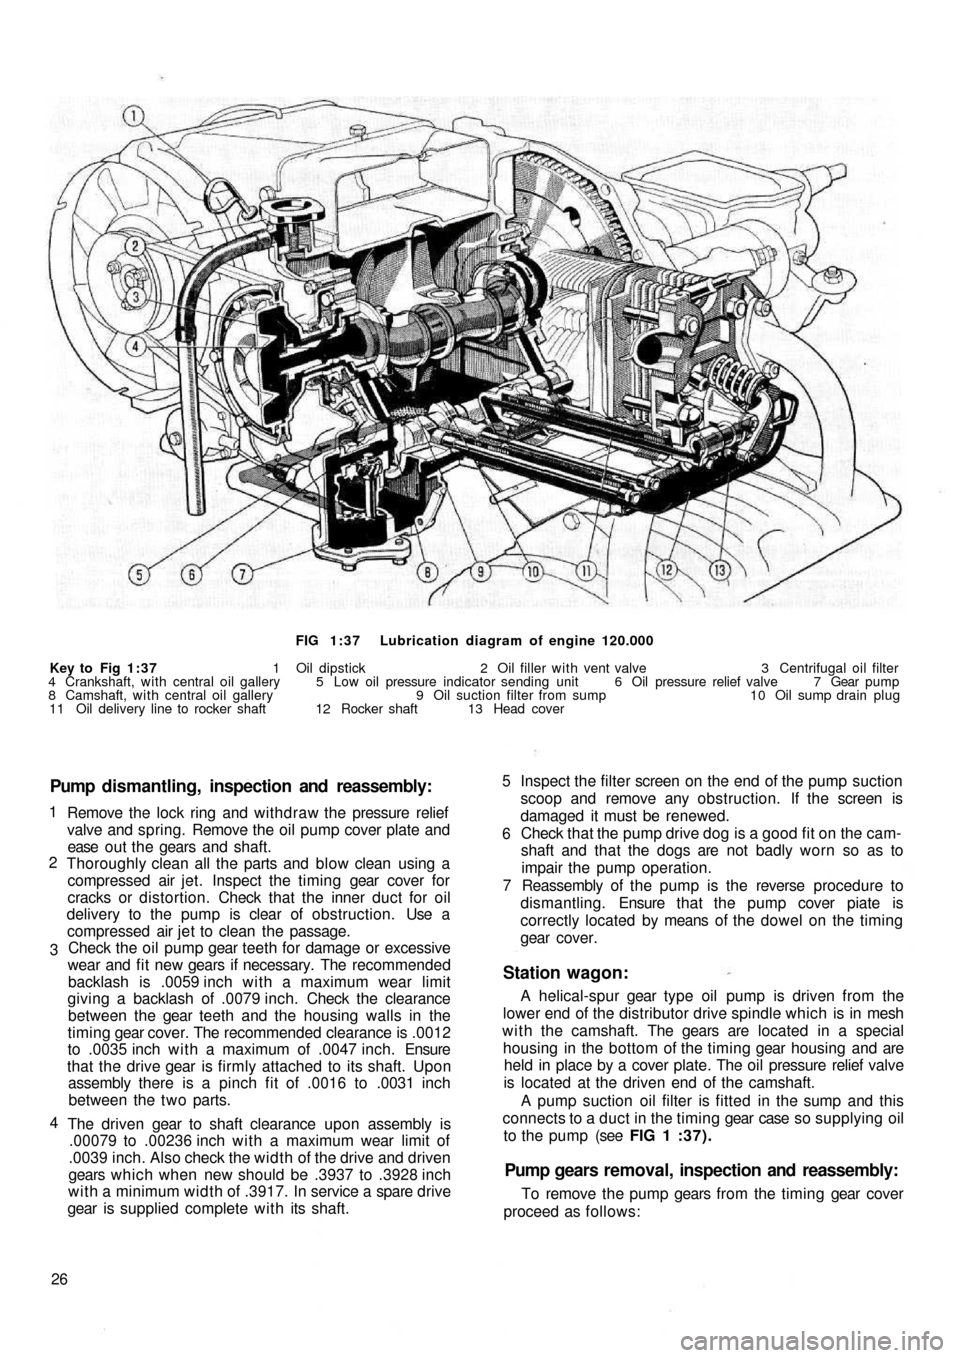 FIAT 500 1959 1.G Workshop Manual